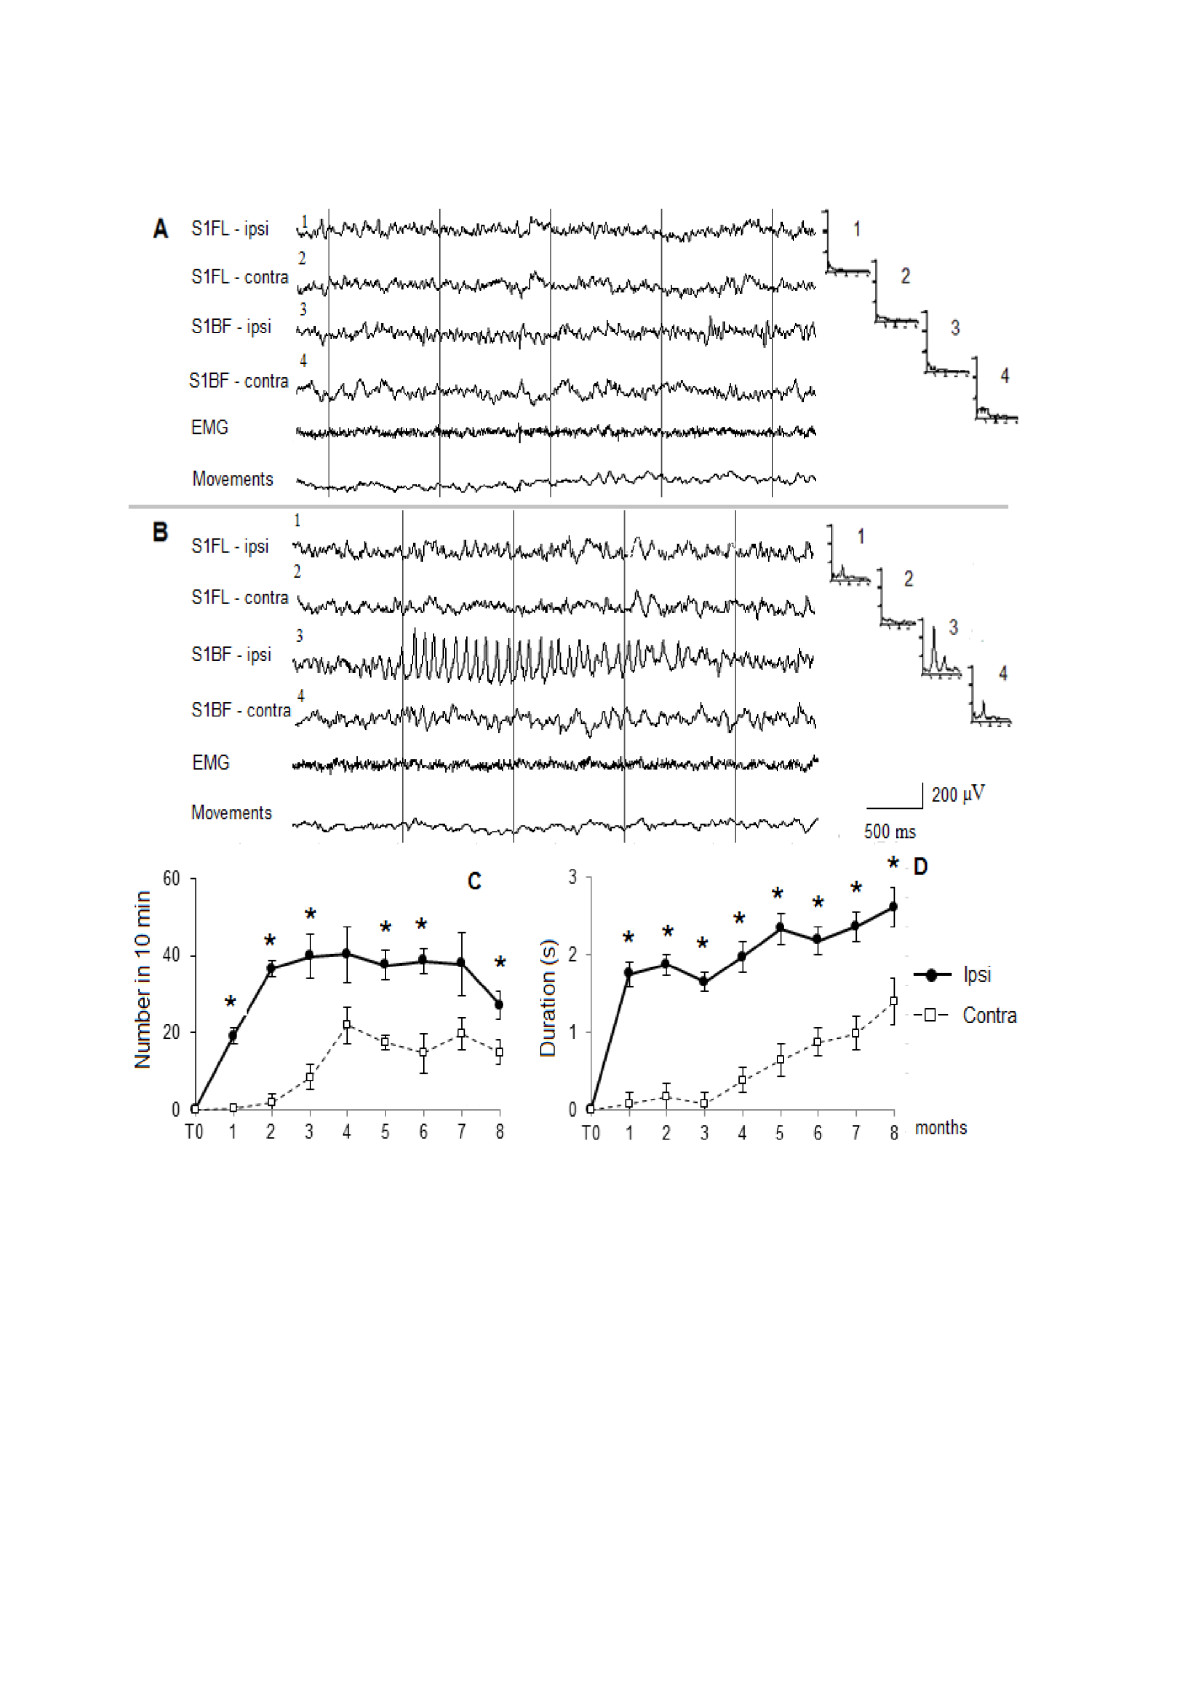 http://static-content.springer.com/image/art%3A10.1186%2F2040-7378-5-13/MediaObjects/13231_2013_Article_84_Fig7_HTML.jpg